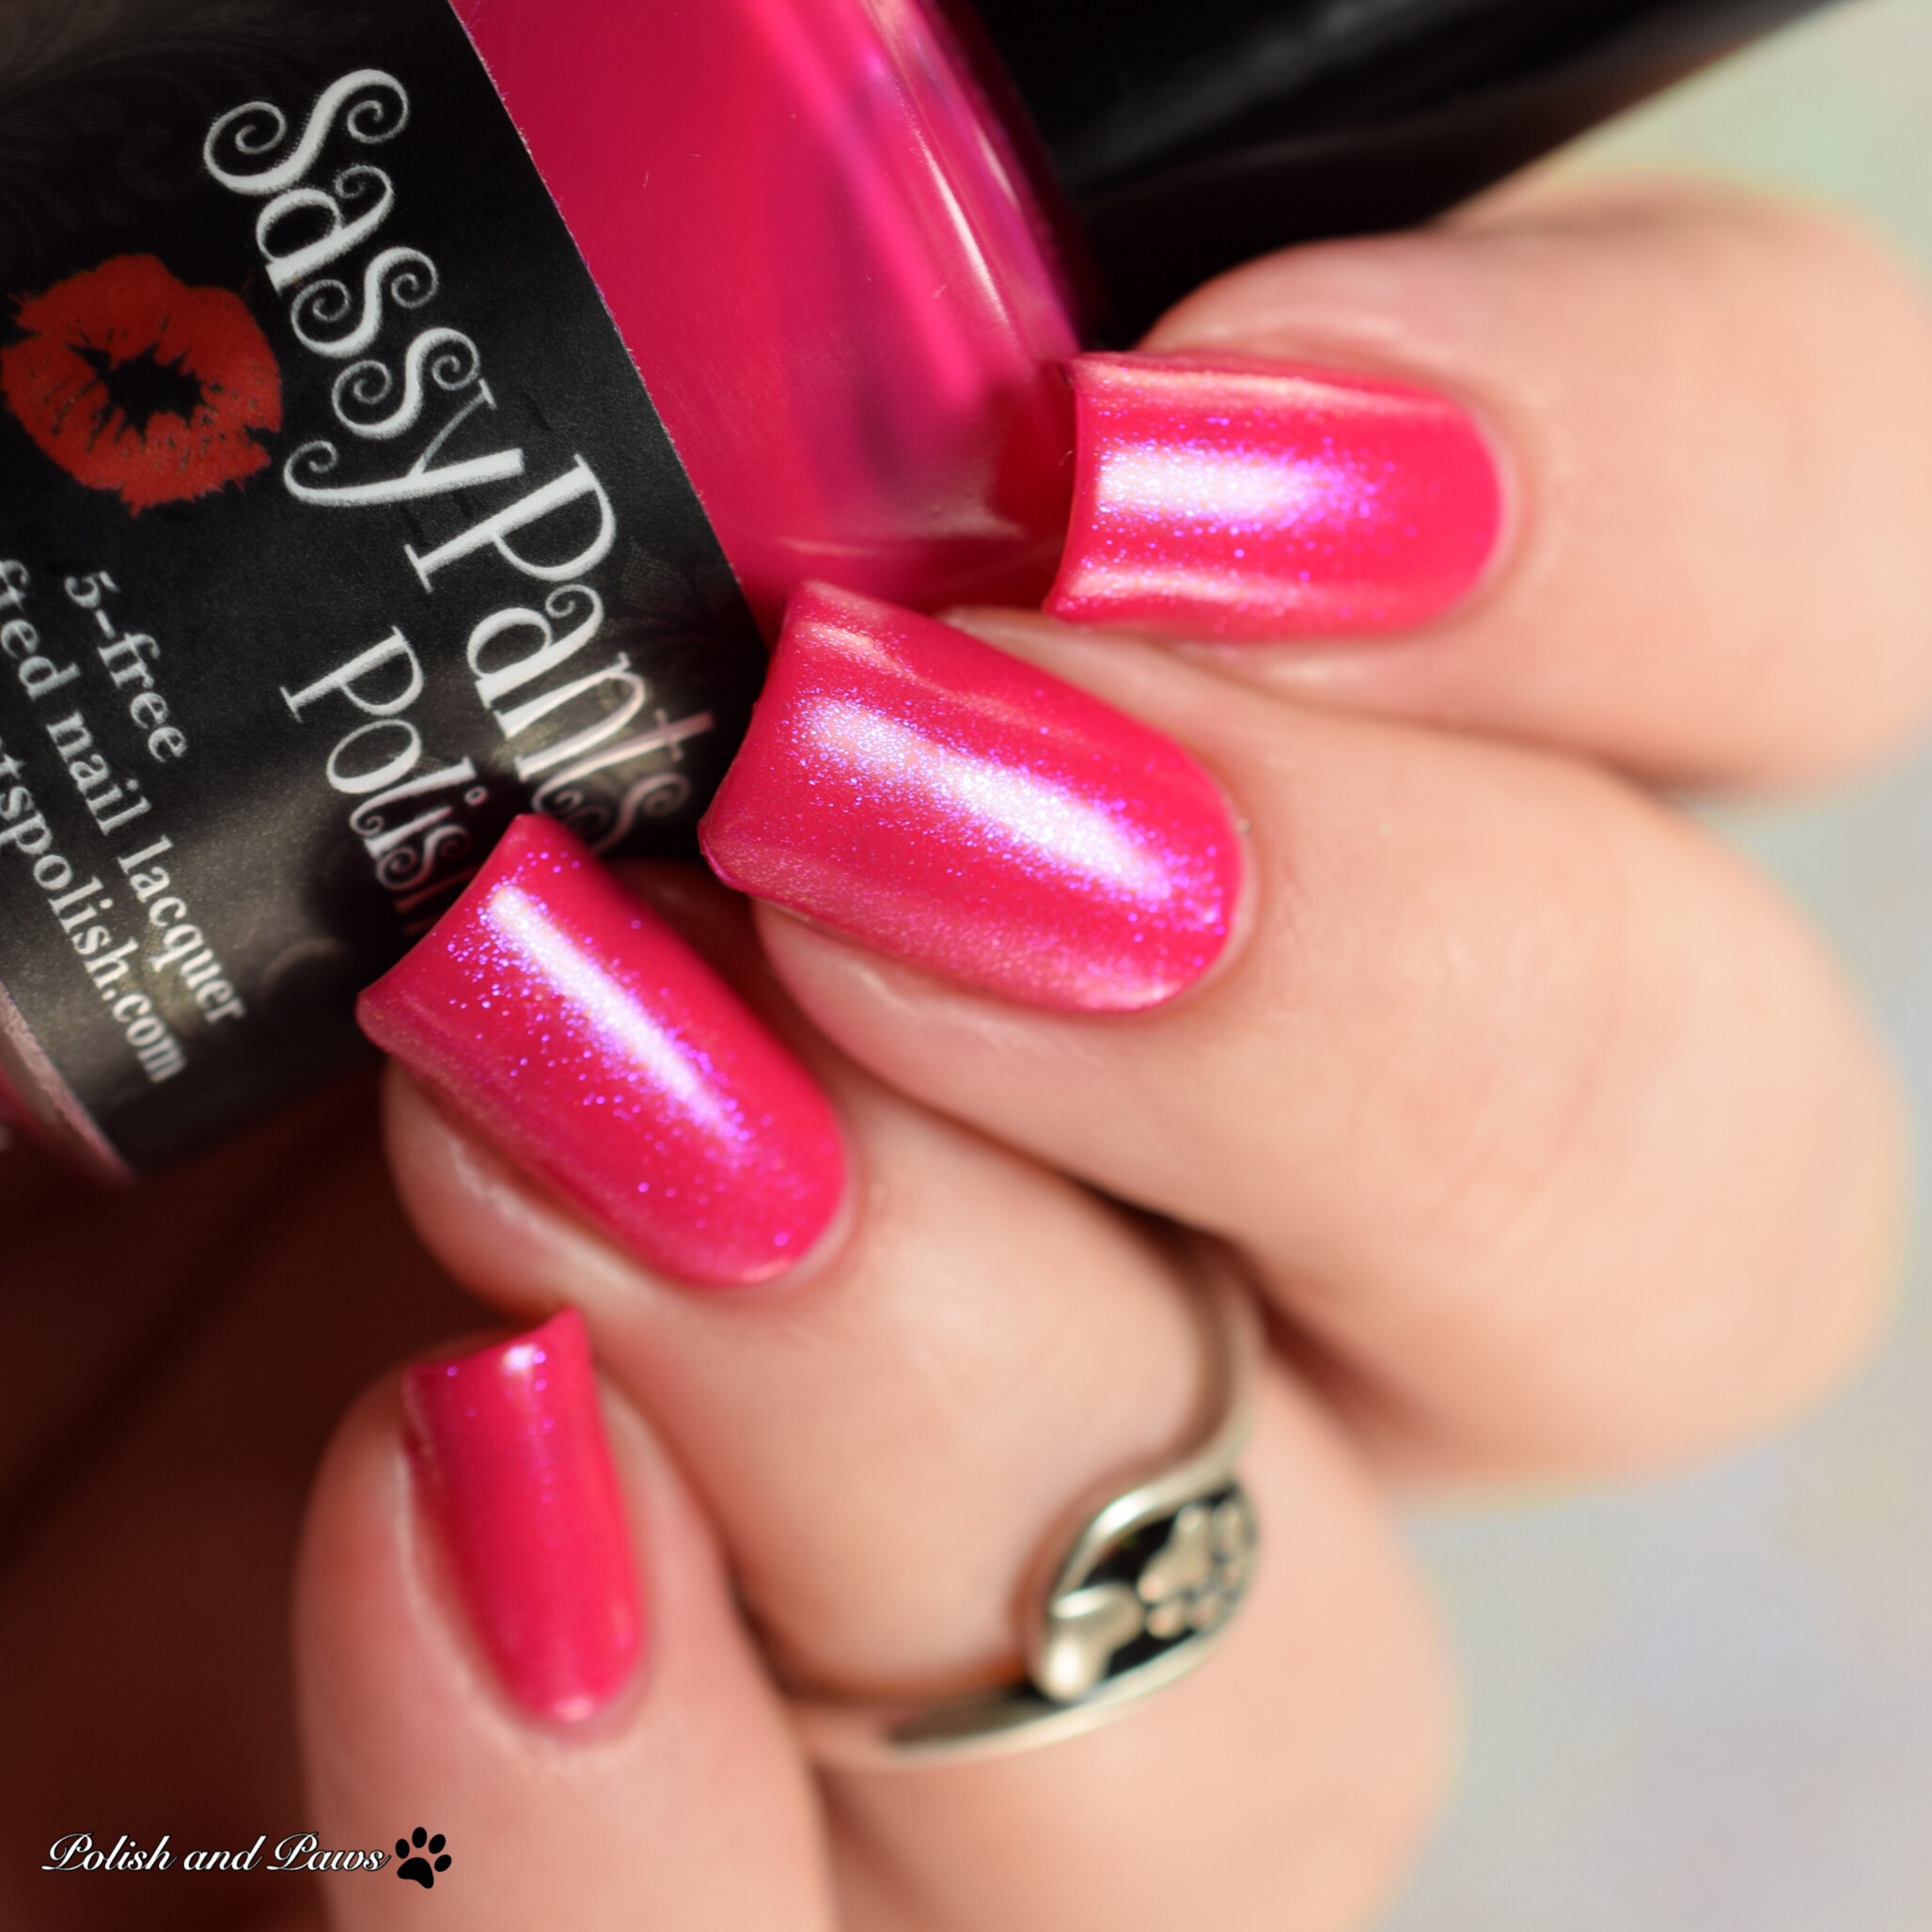 Sassy Pants Polish Forever Yours layered over Kiss Off!